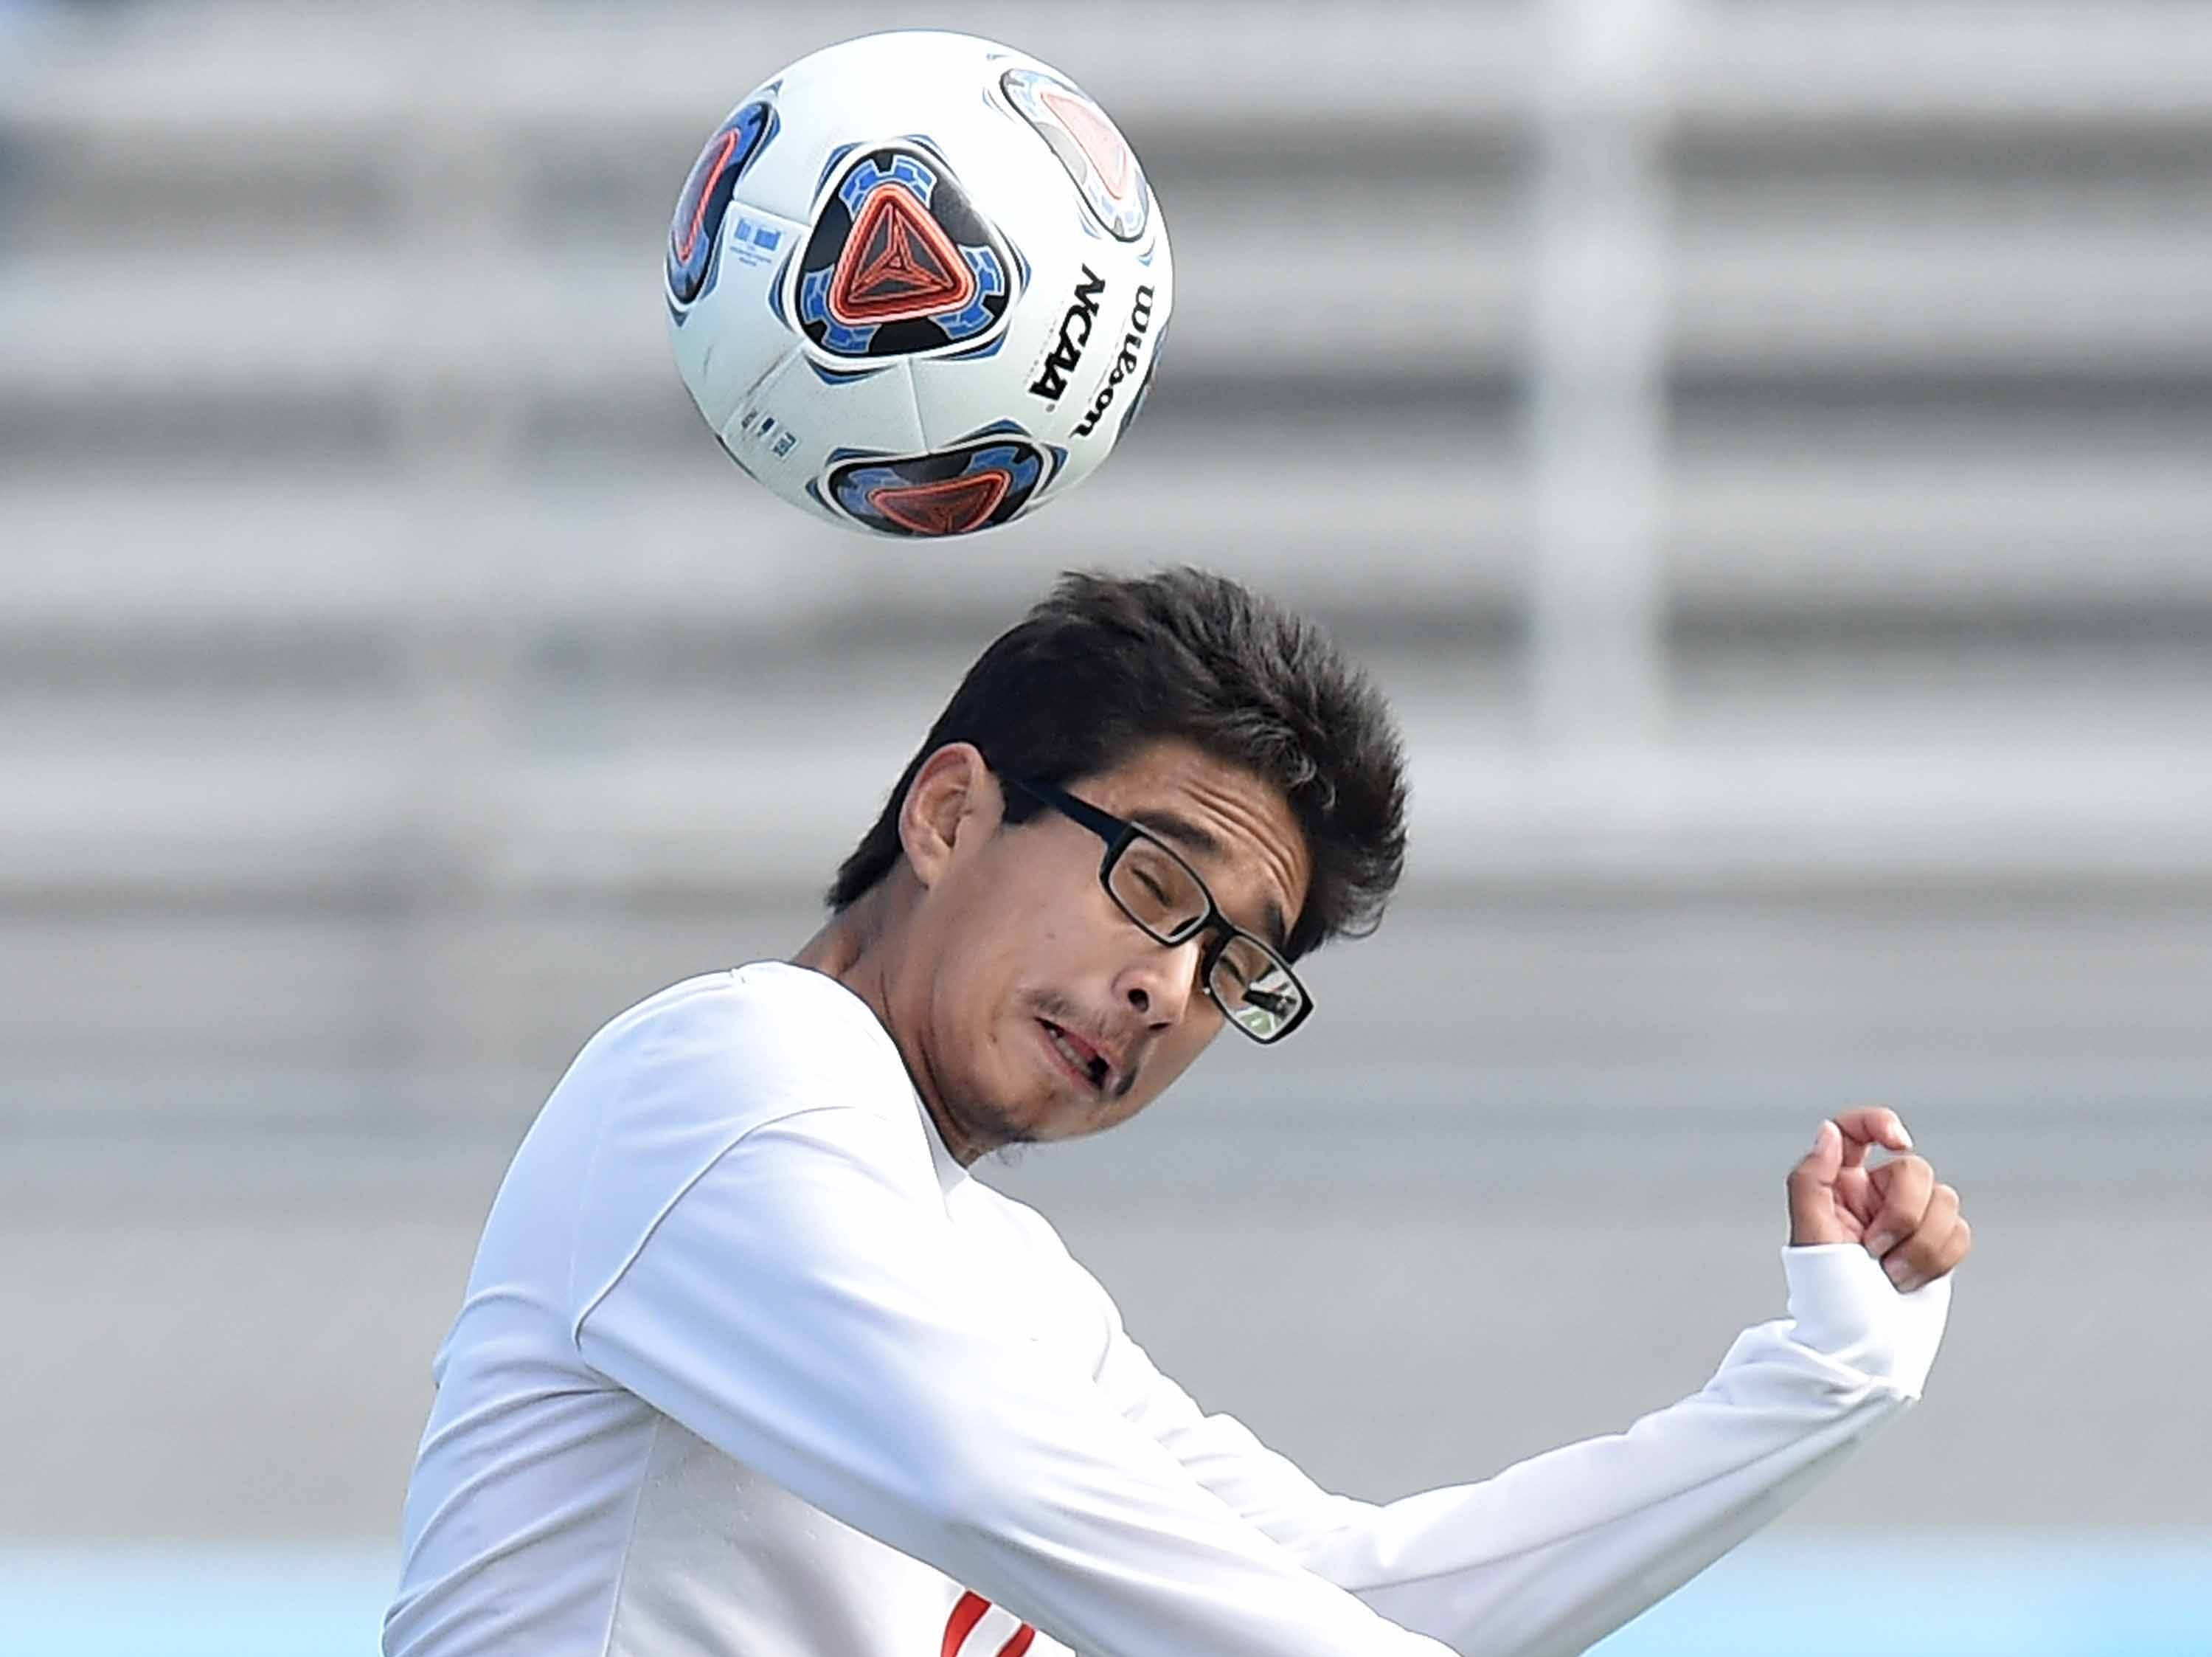 Richland's Billy Guevara (11) heads the ball against West Lauderdale in the Class 4A state championship in the MHSAA BlueCross Blue Shield of Mississippi Soccer Classic on Saturday, February 9, 2019, at Ridgeland High School in Ridgeland, Miss.